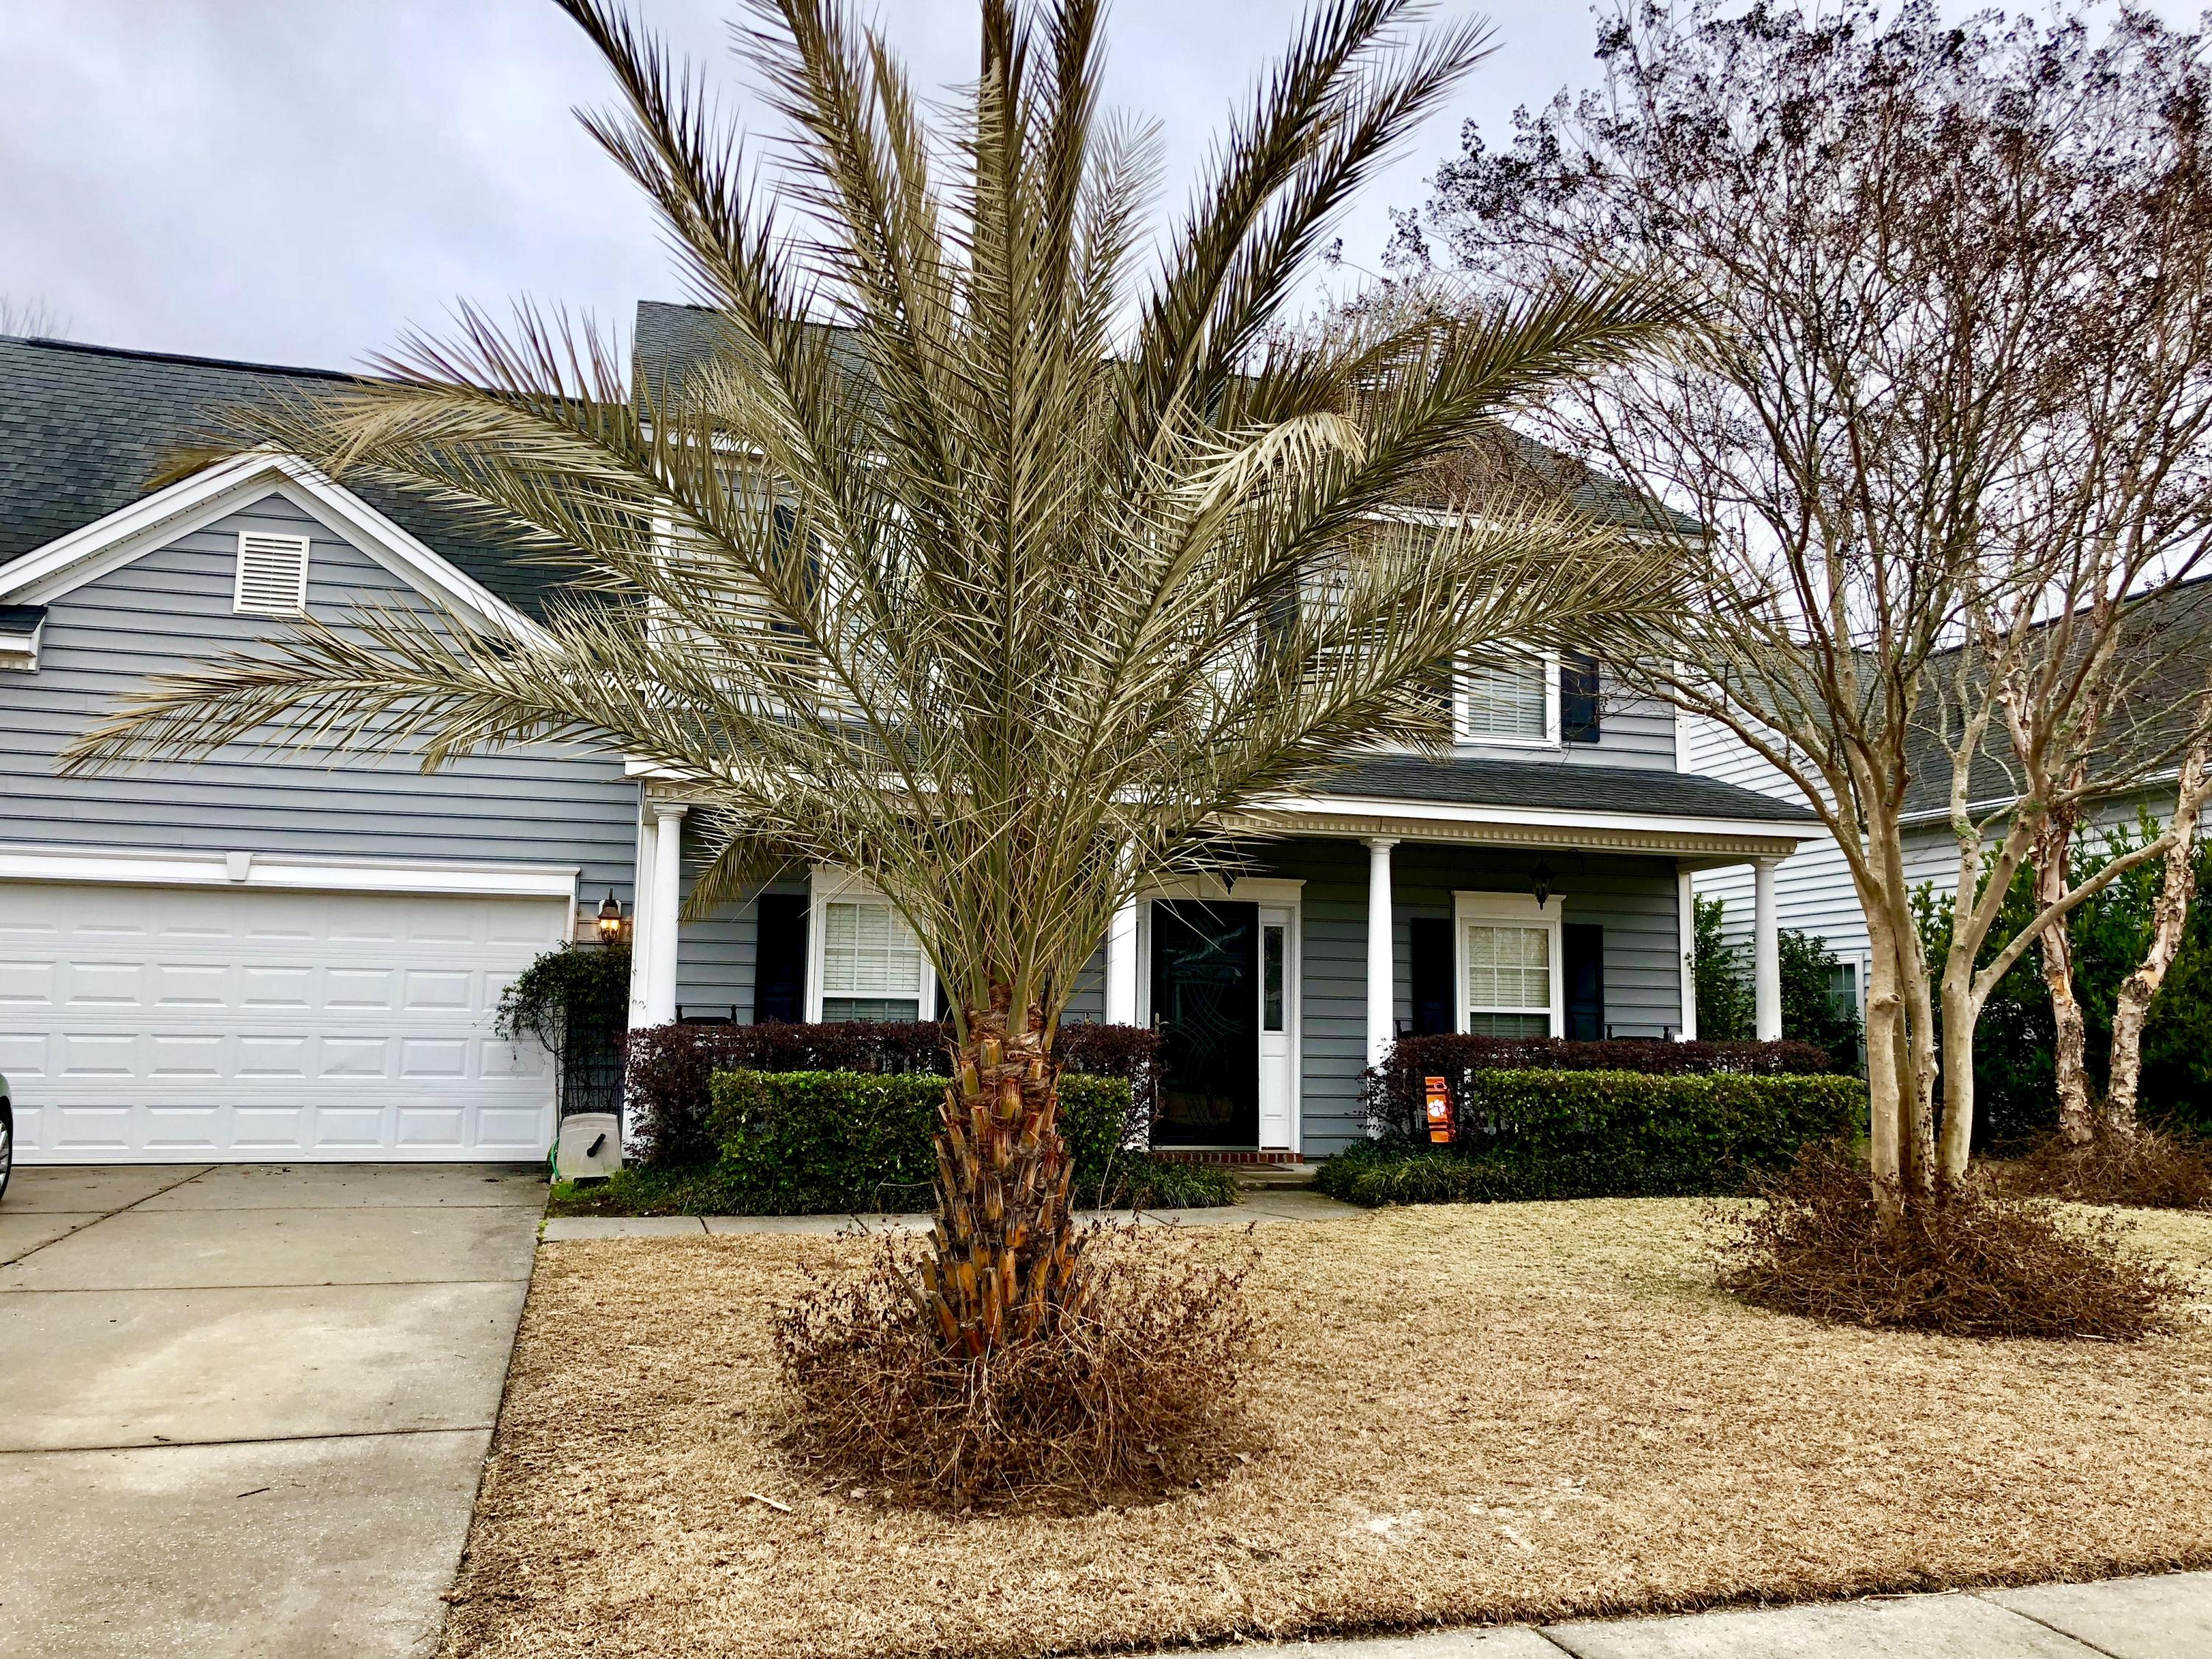 Photo of 7323 Coopers Hawk Dr, Hanahan, SC 29410